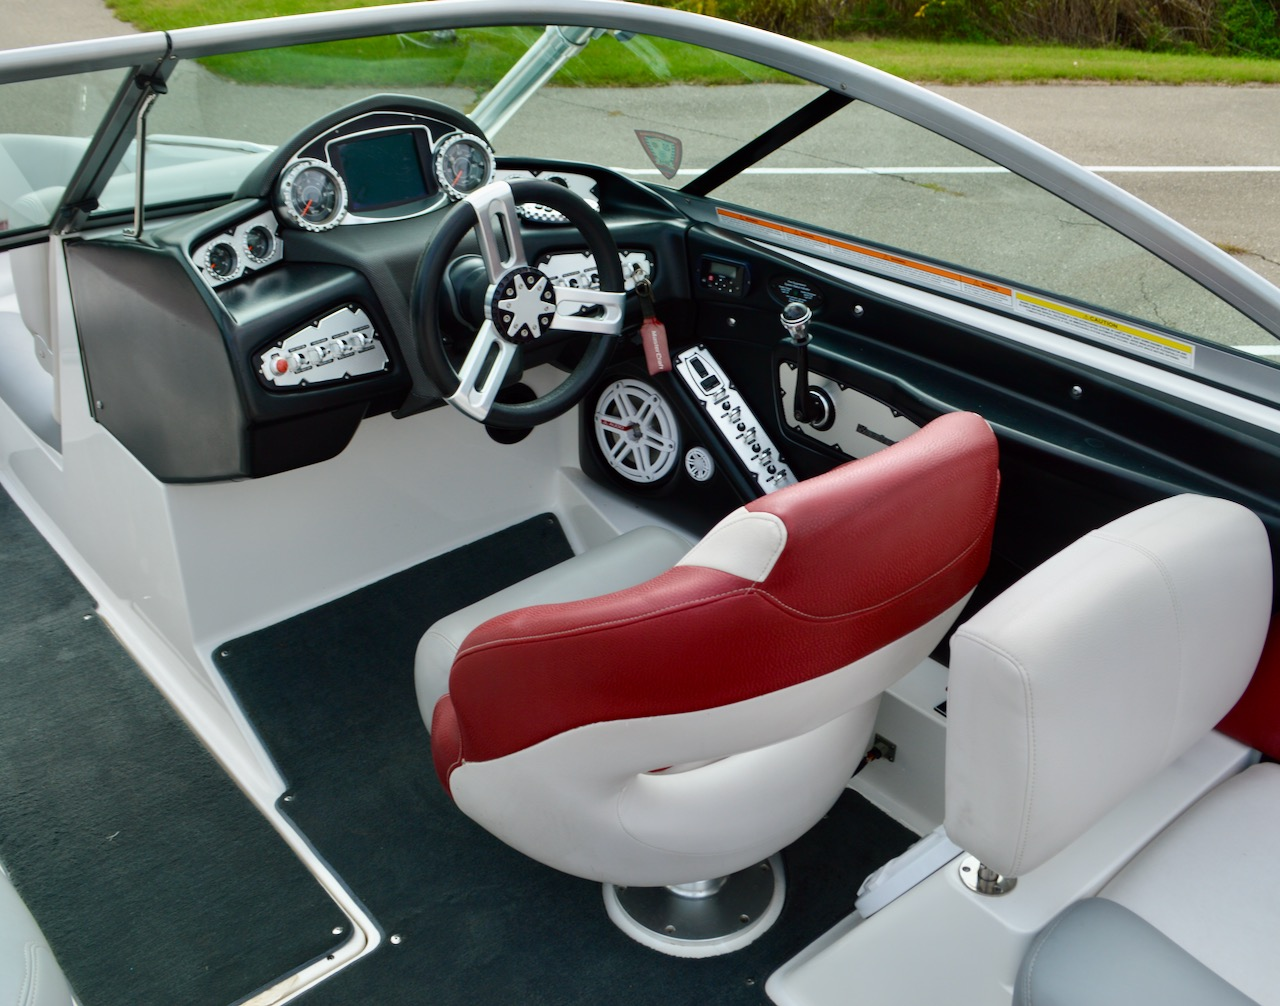 2010 MasterCraft X-25 with Surf Tabs